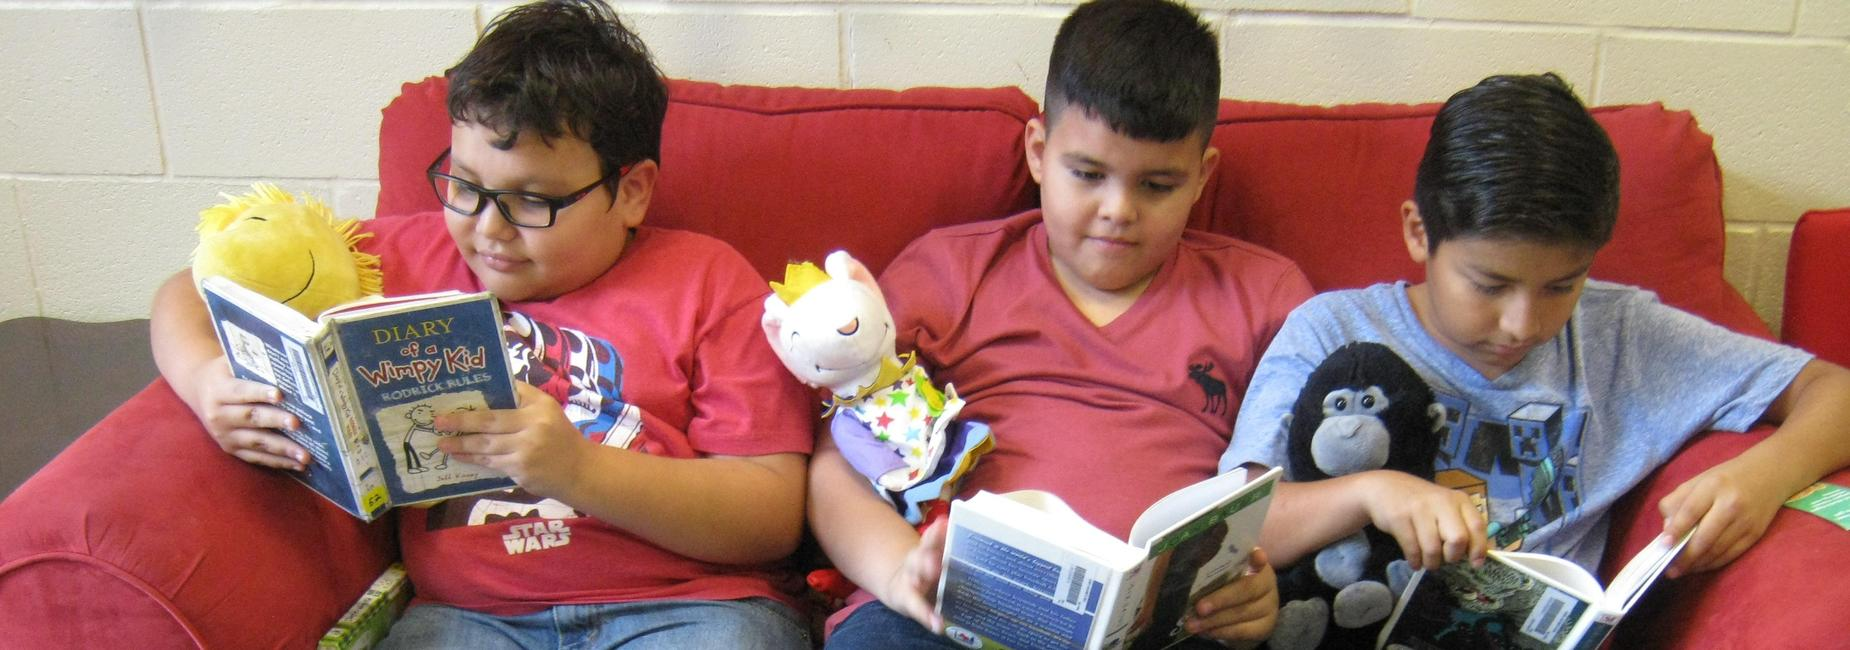 Students reading on the sofa.